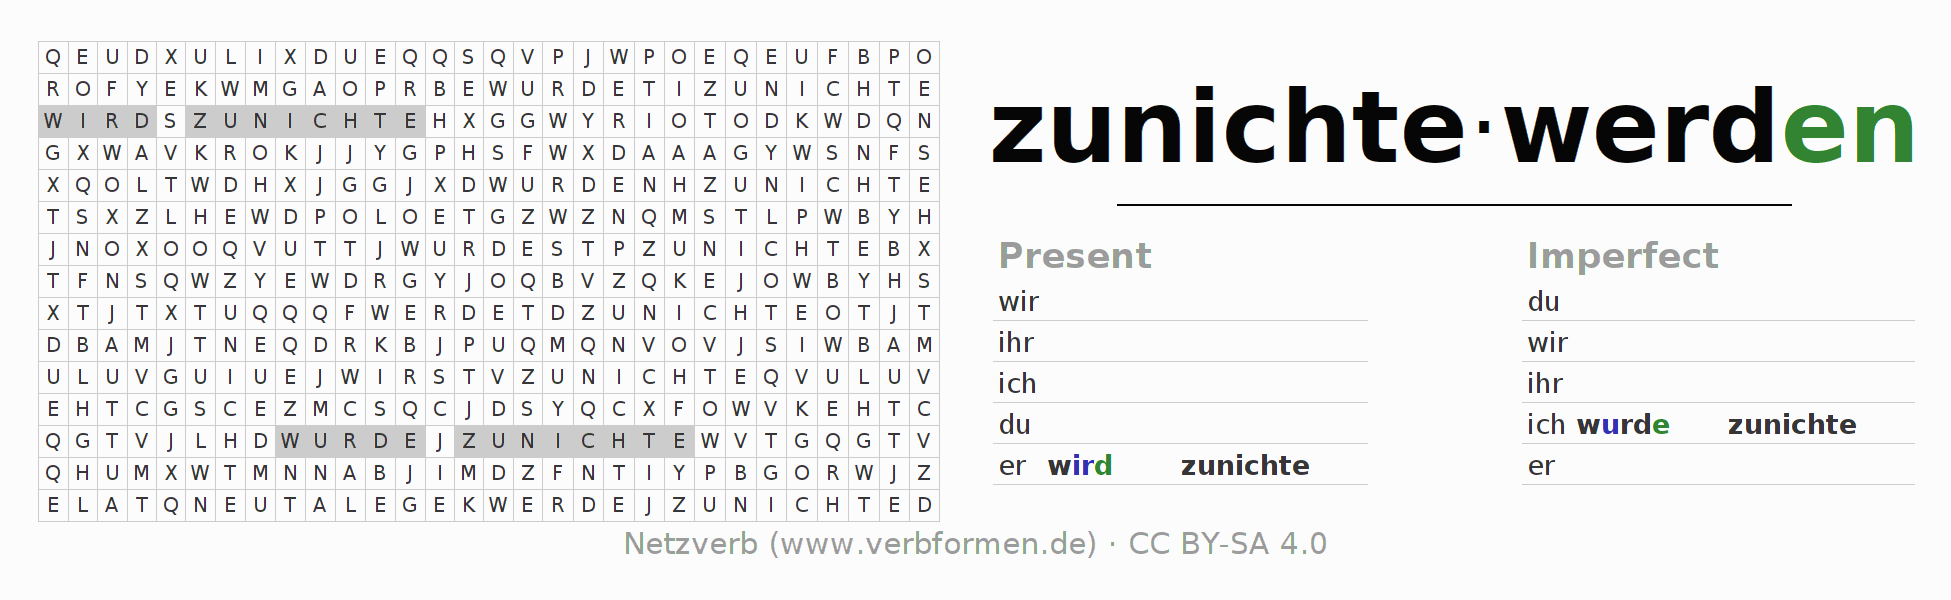 Word search puzzle for the conjugation of the verb zunichtewerden